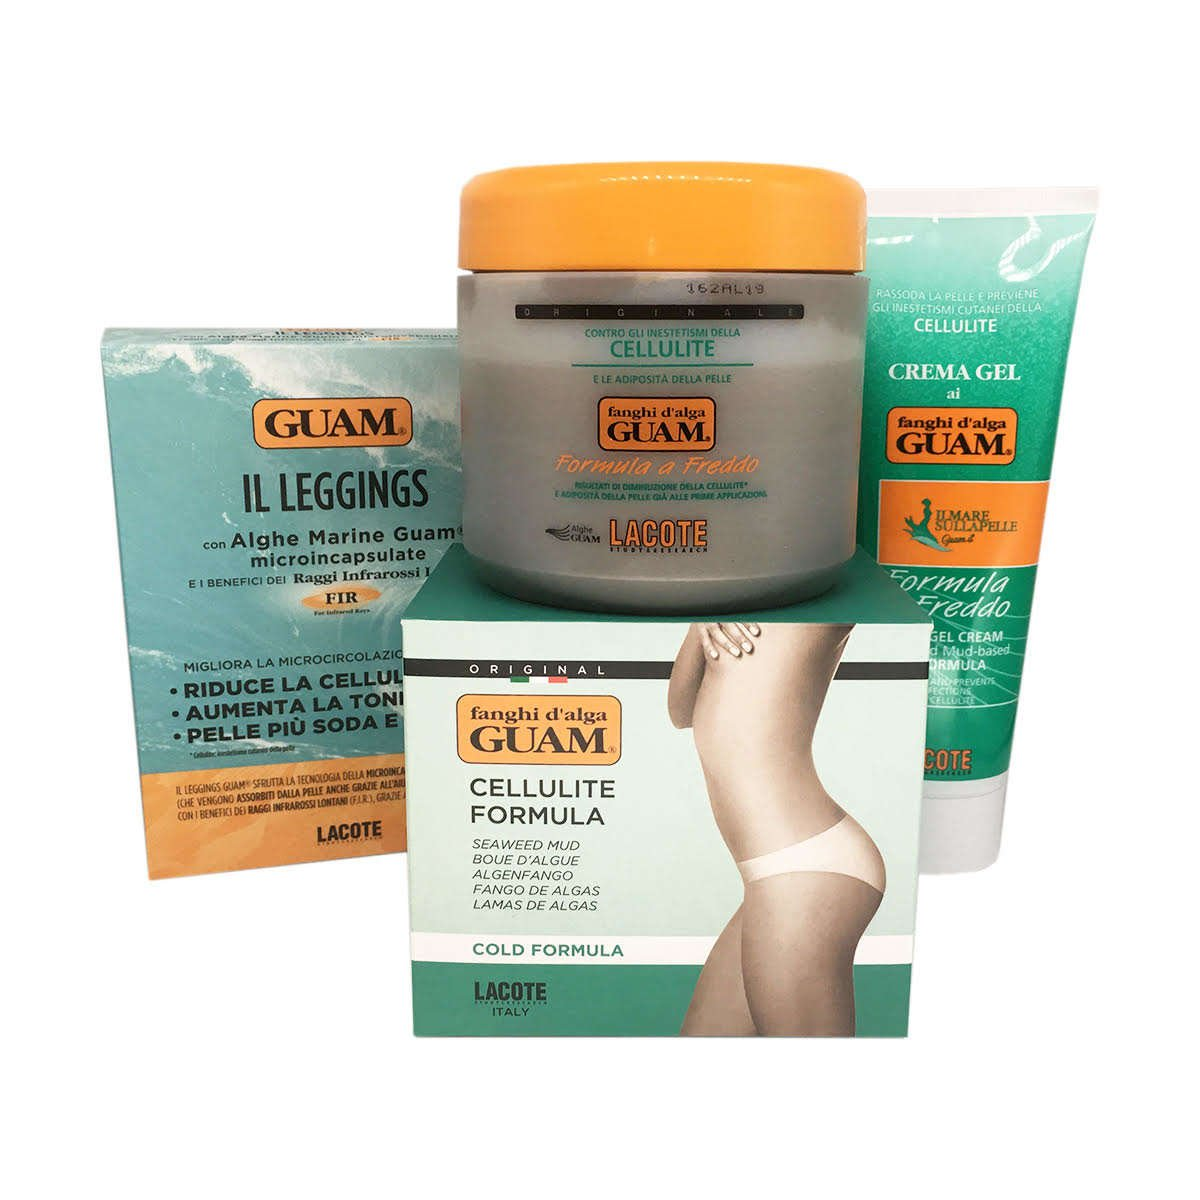 Guam cellulite cosmetic anti-cellulite treatment body wrap for legs